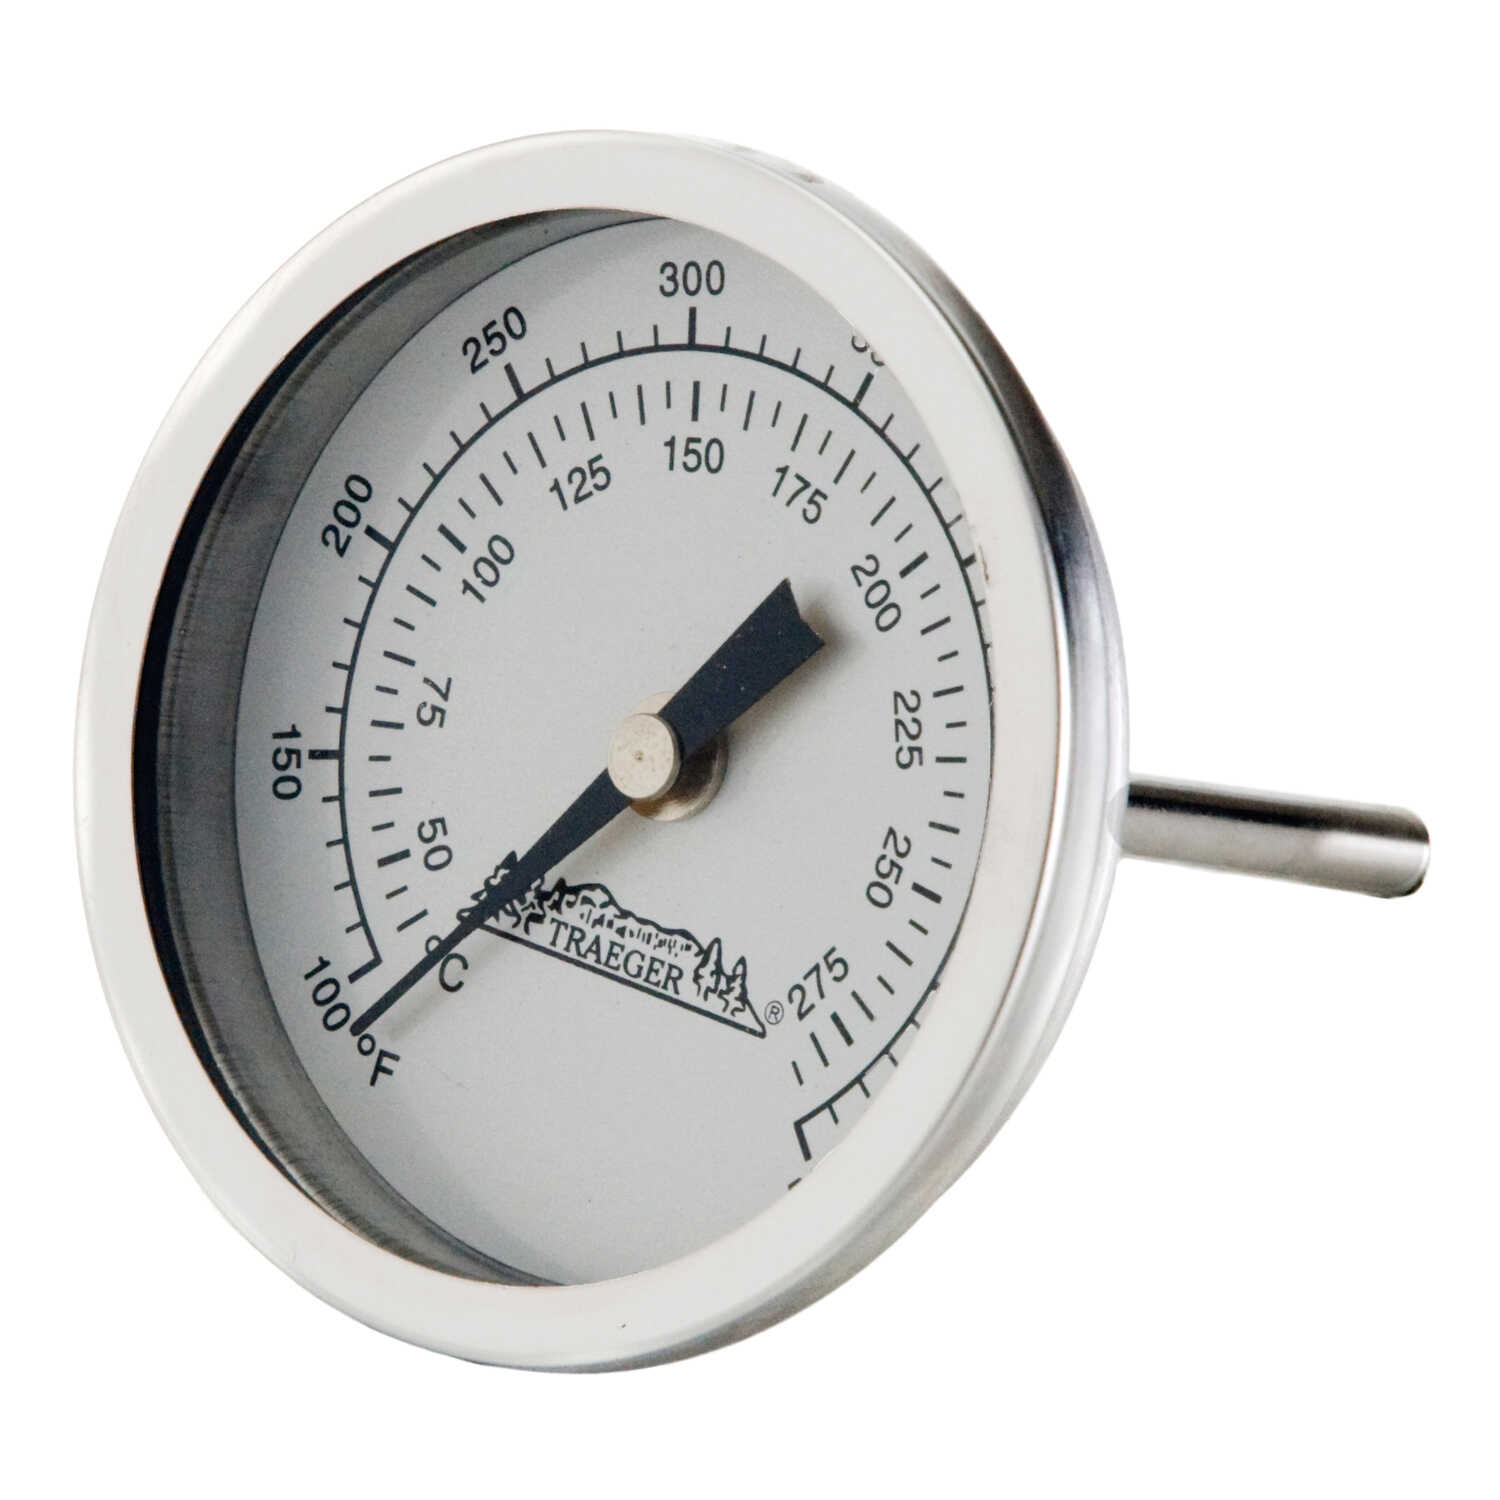 Traeger  Instant Read Analog  Grill Dome Thermometer